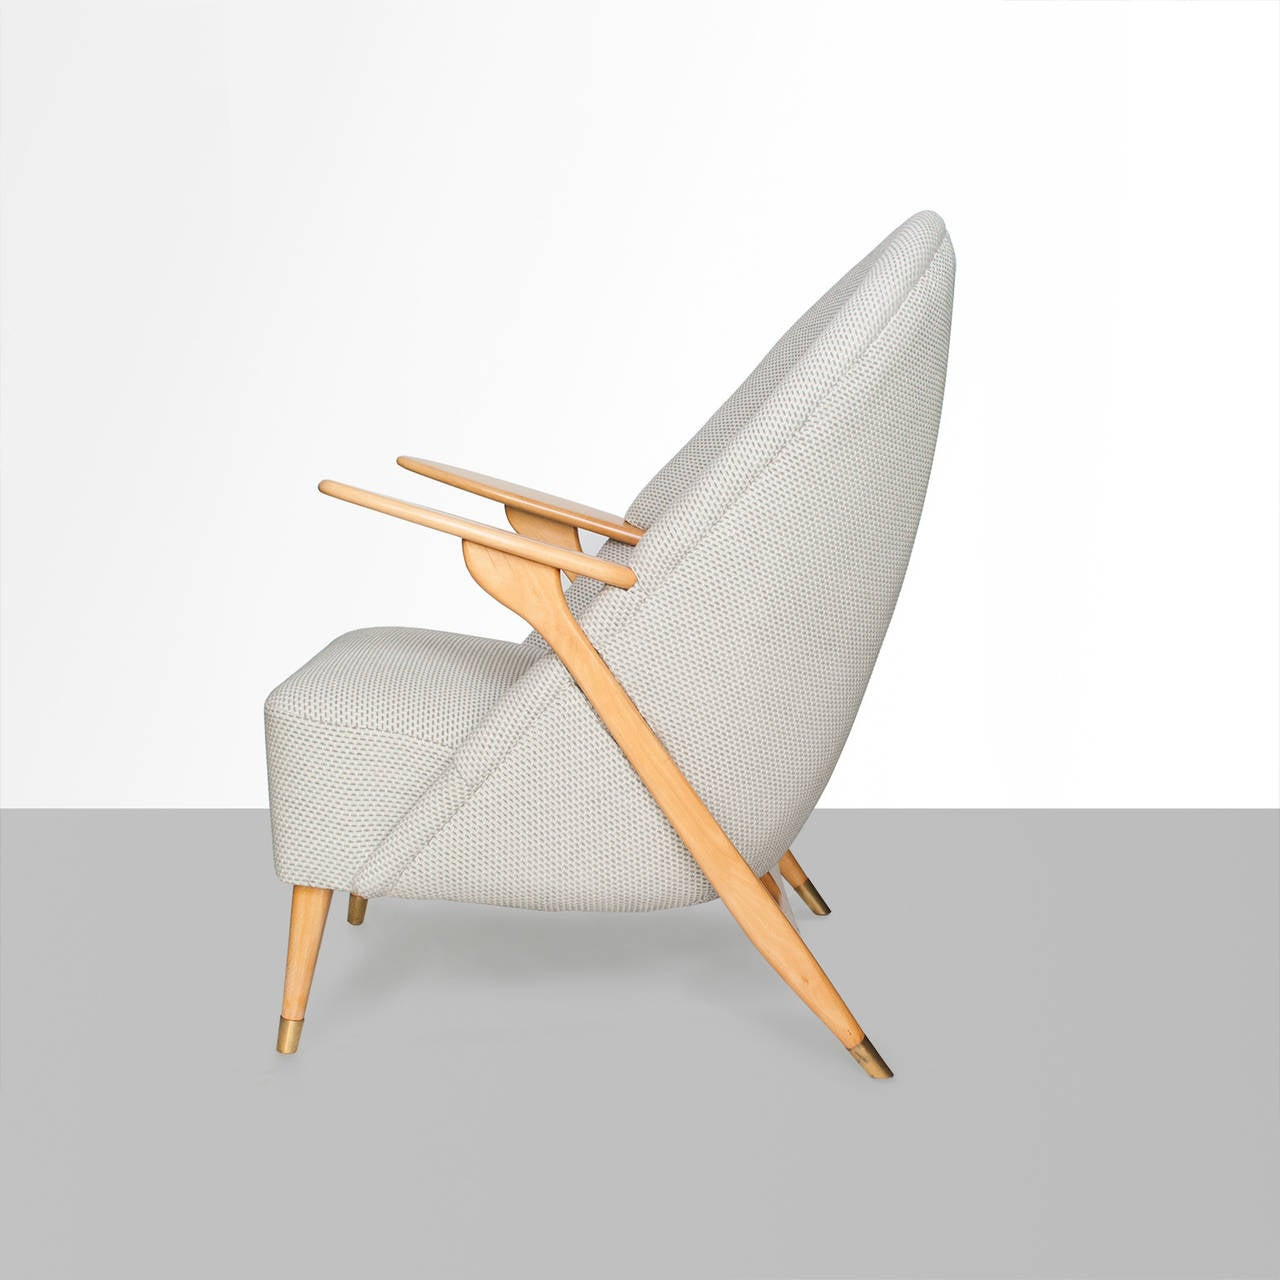 Scandinavian Modern Lounge Chair by Svante Skogh for Säffle Möbelfabrik 3